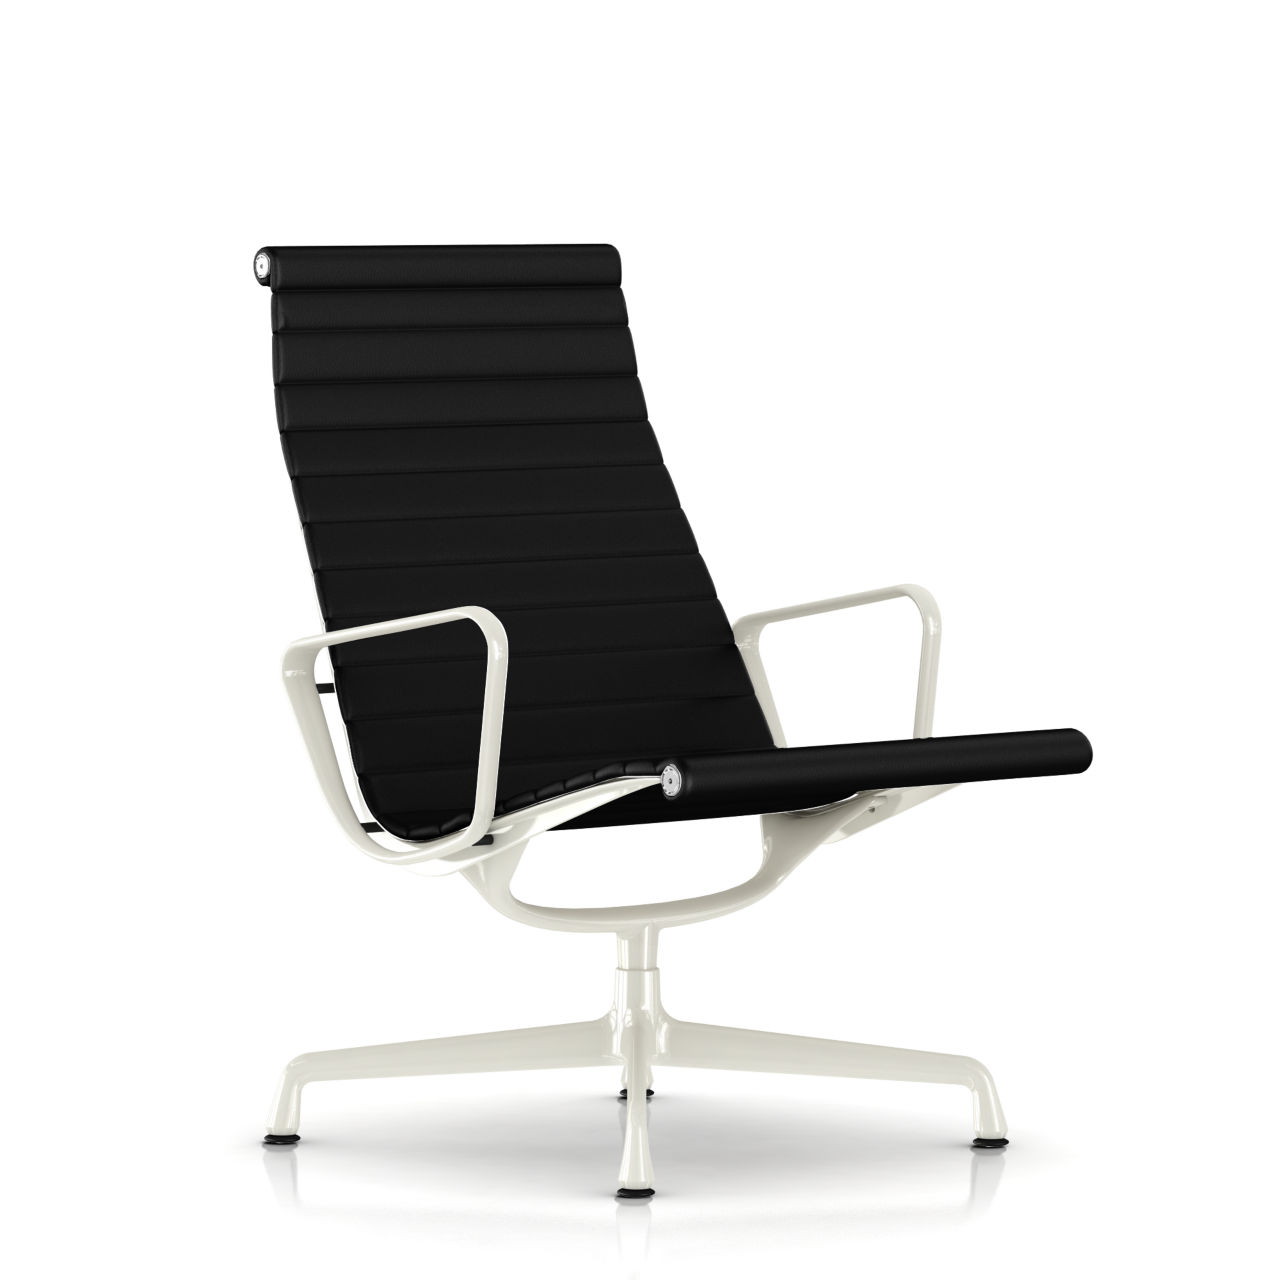 Eames Aluminum Lounge Chair in Black Leather by Herman Miller